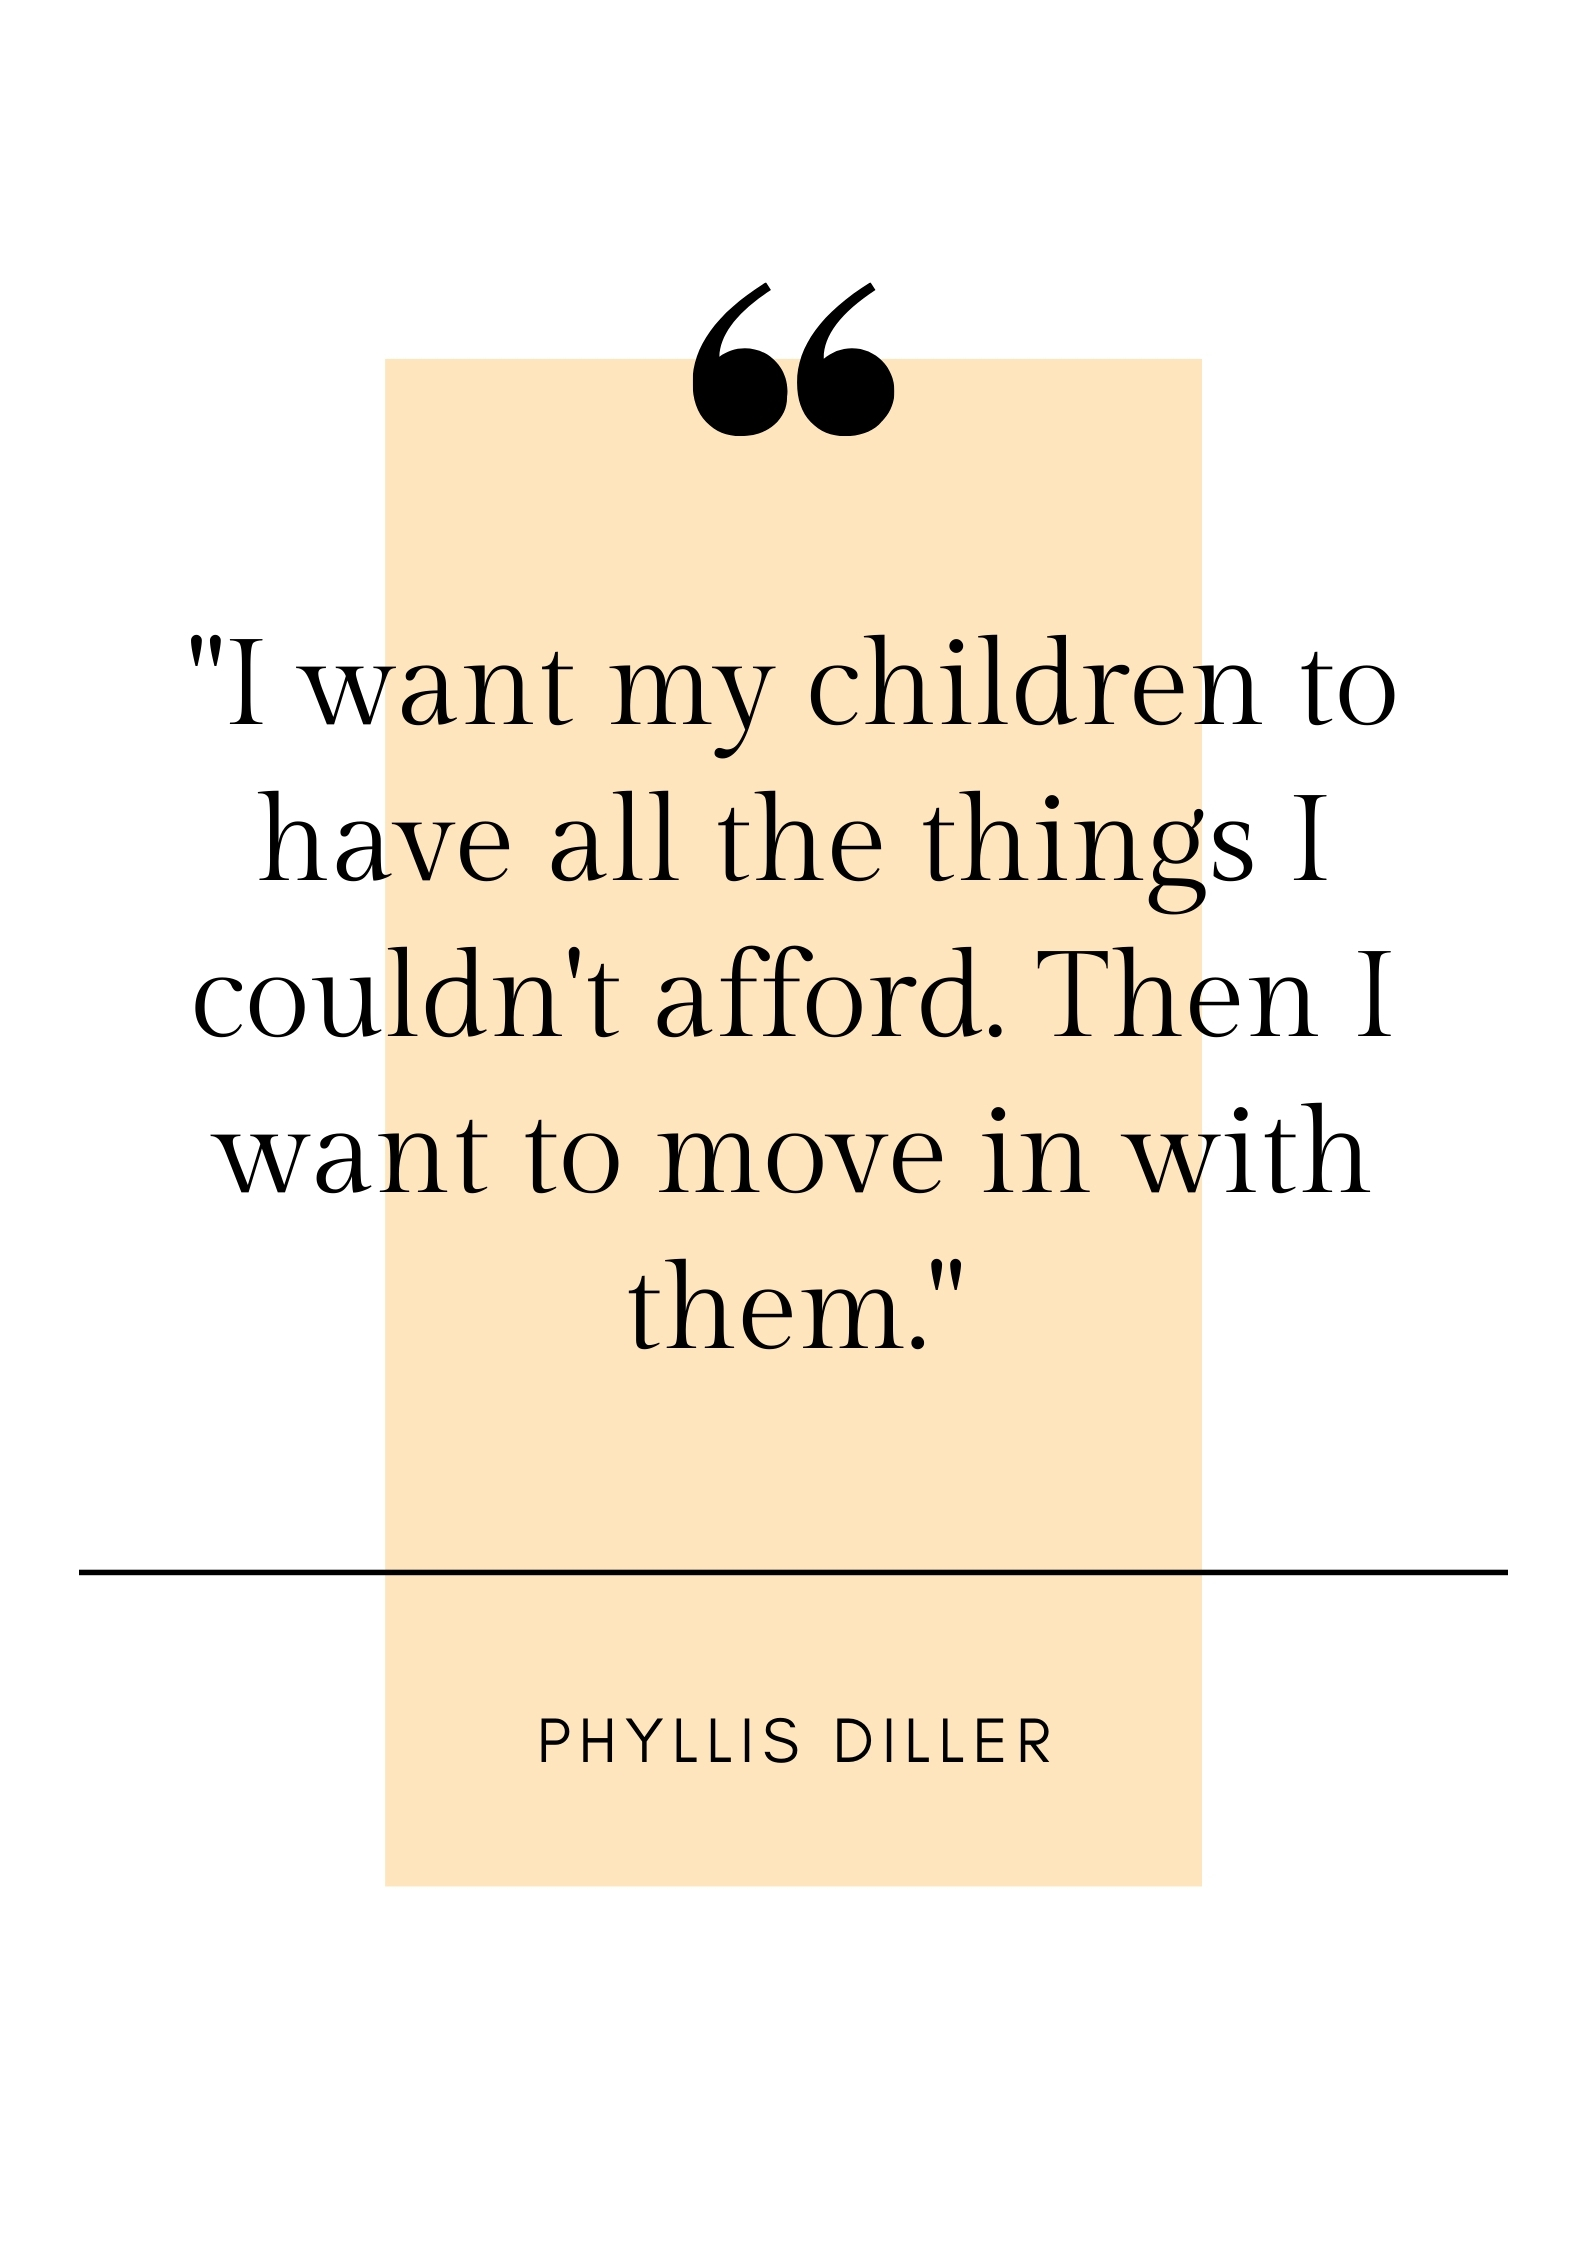 phyllis diller parenting quote